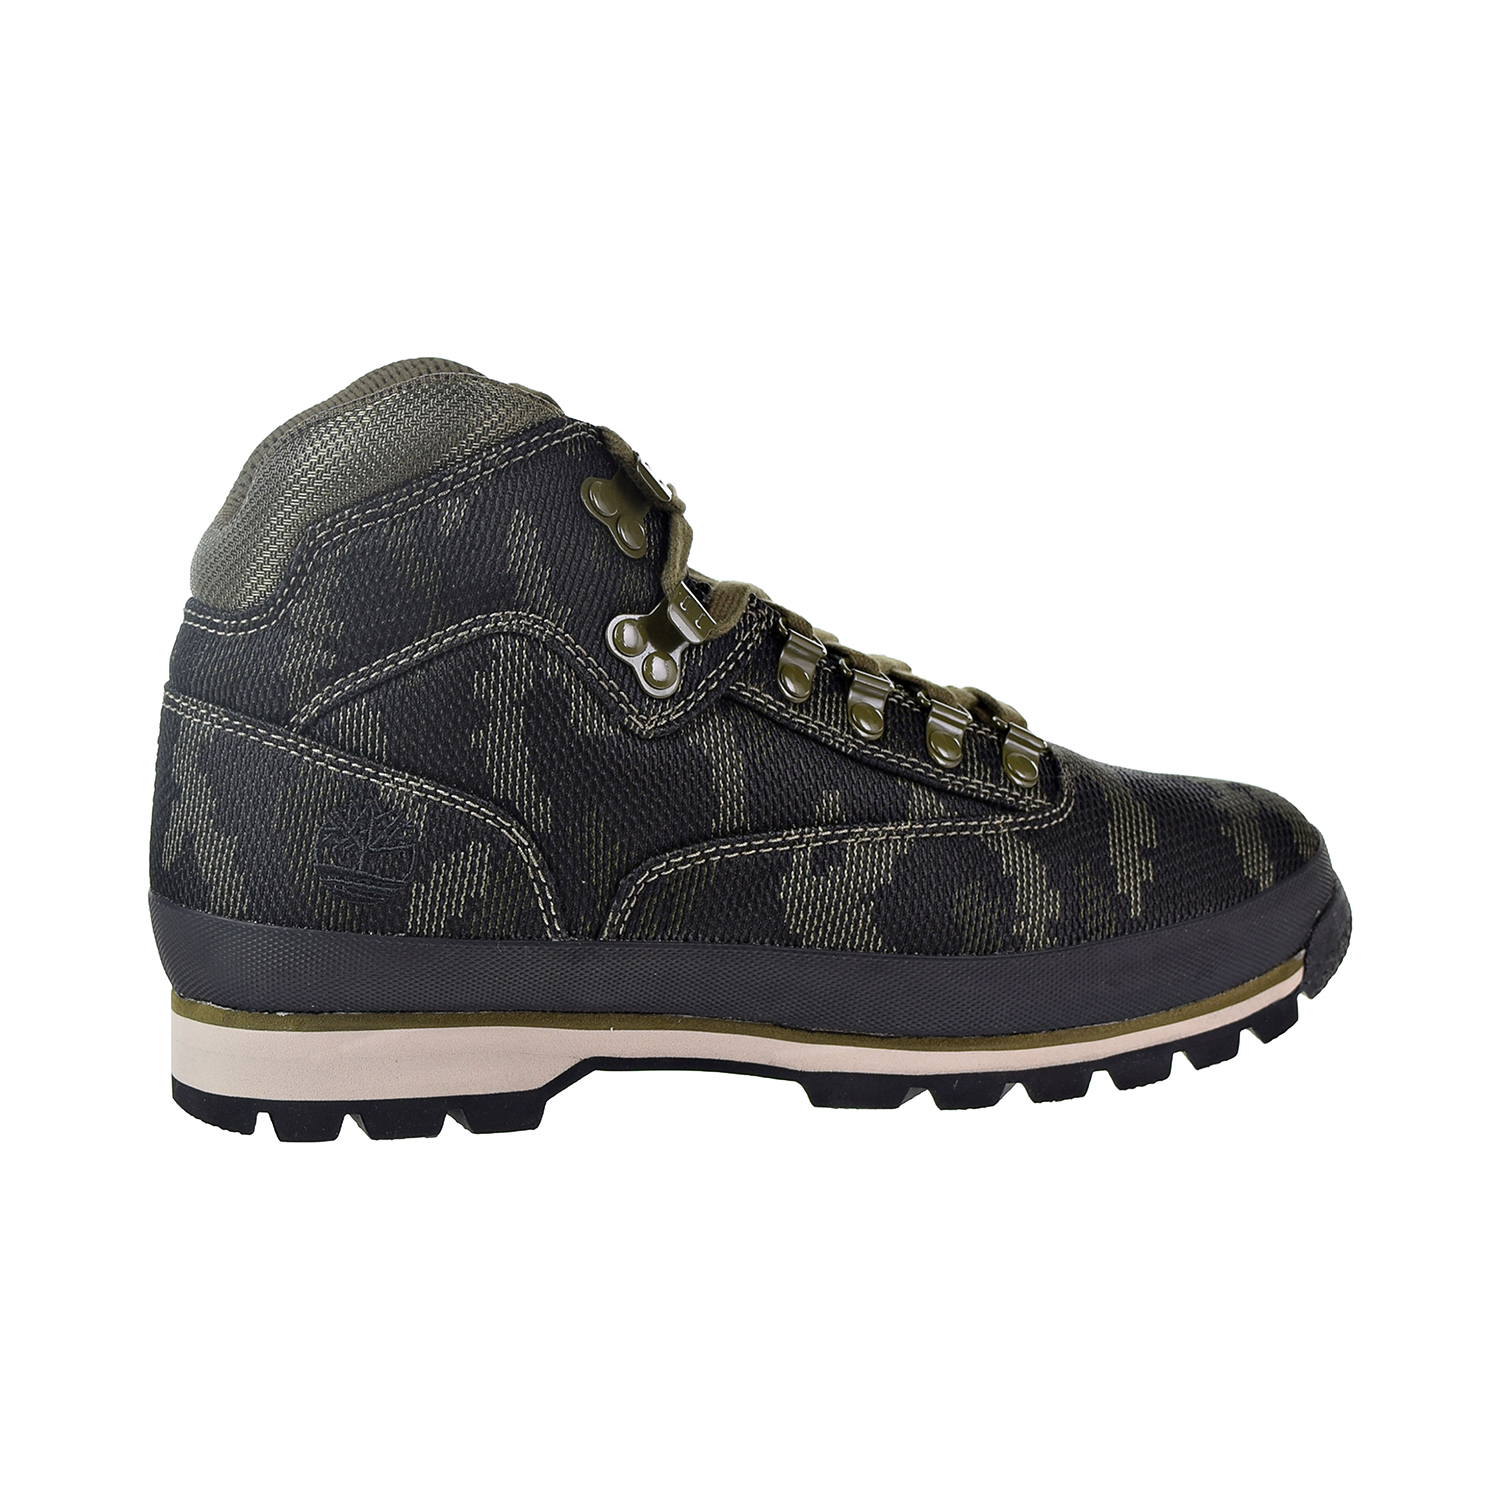 d7094dad9 Details about Timberland Eurohiker Fabric Men s Boots Black Jacquard Camo  TB0A1RC1